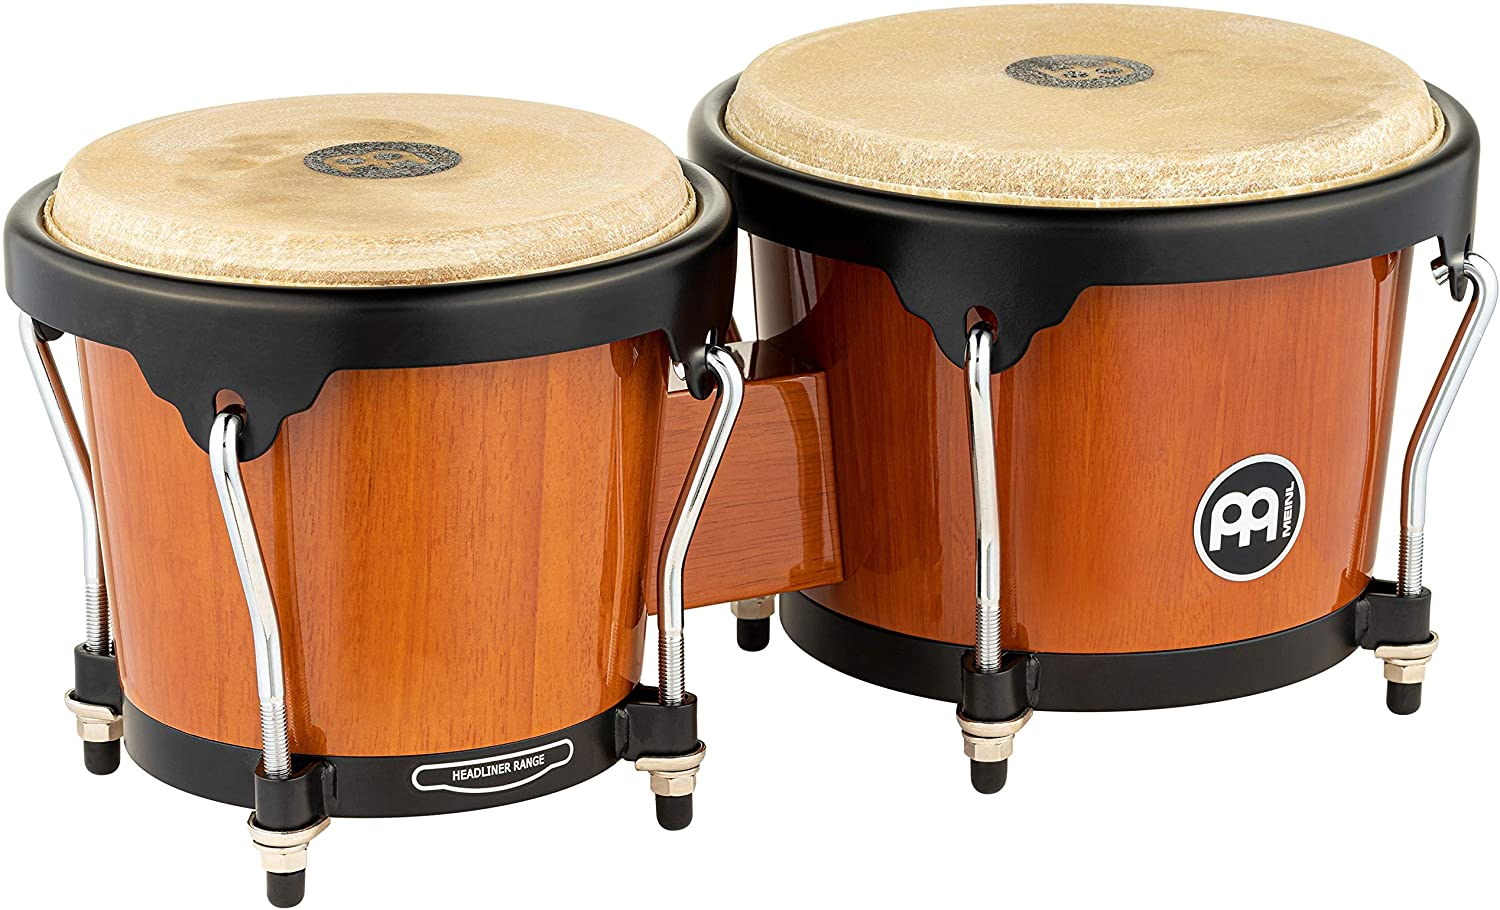 Meinl Percussion Bongos with Rubberwood Stave Shells — NOT MADE IN CHINA — Natural Buffalo Skin Heads, 2-YEAR WARRANTY, Maple, inch (HB100MA)